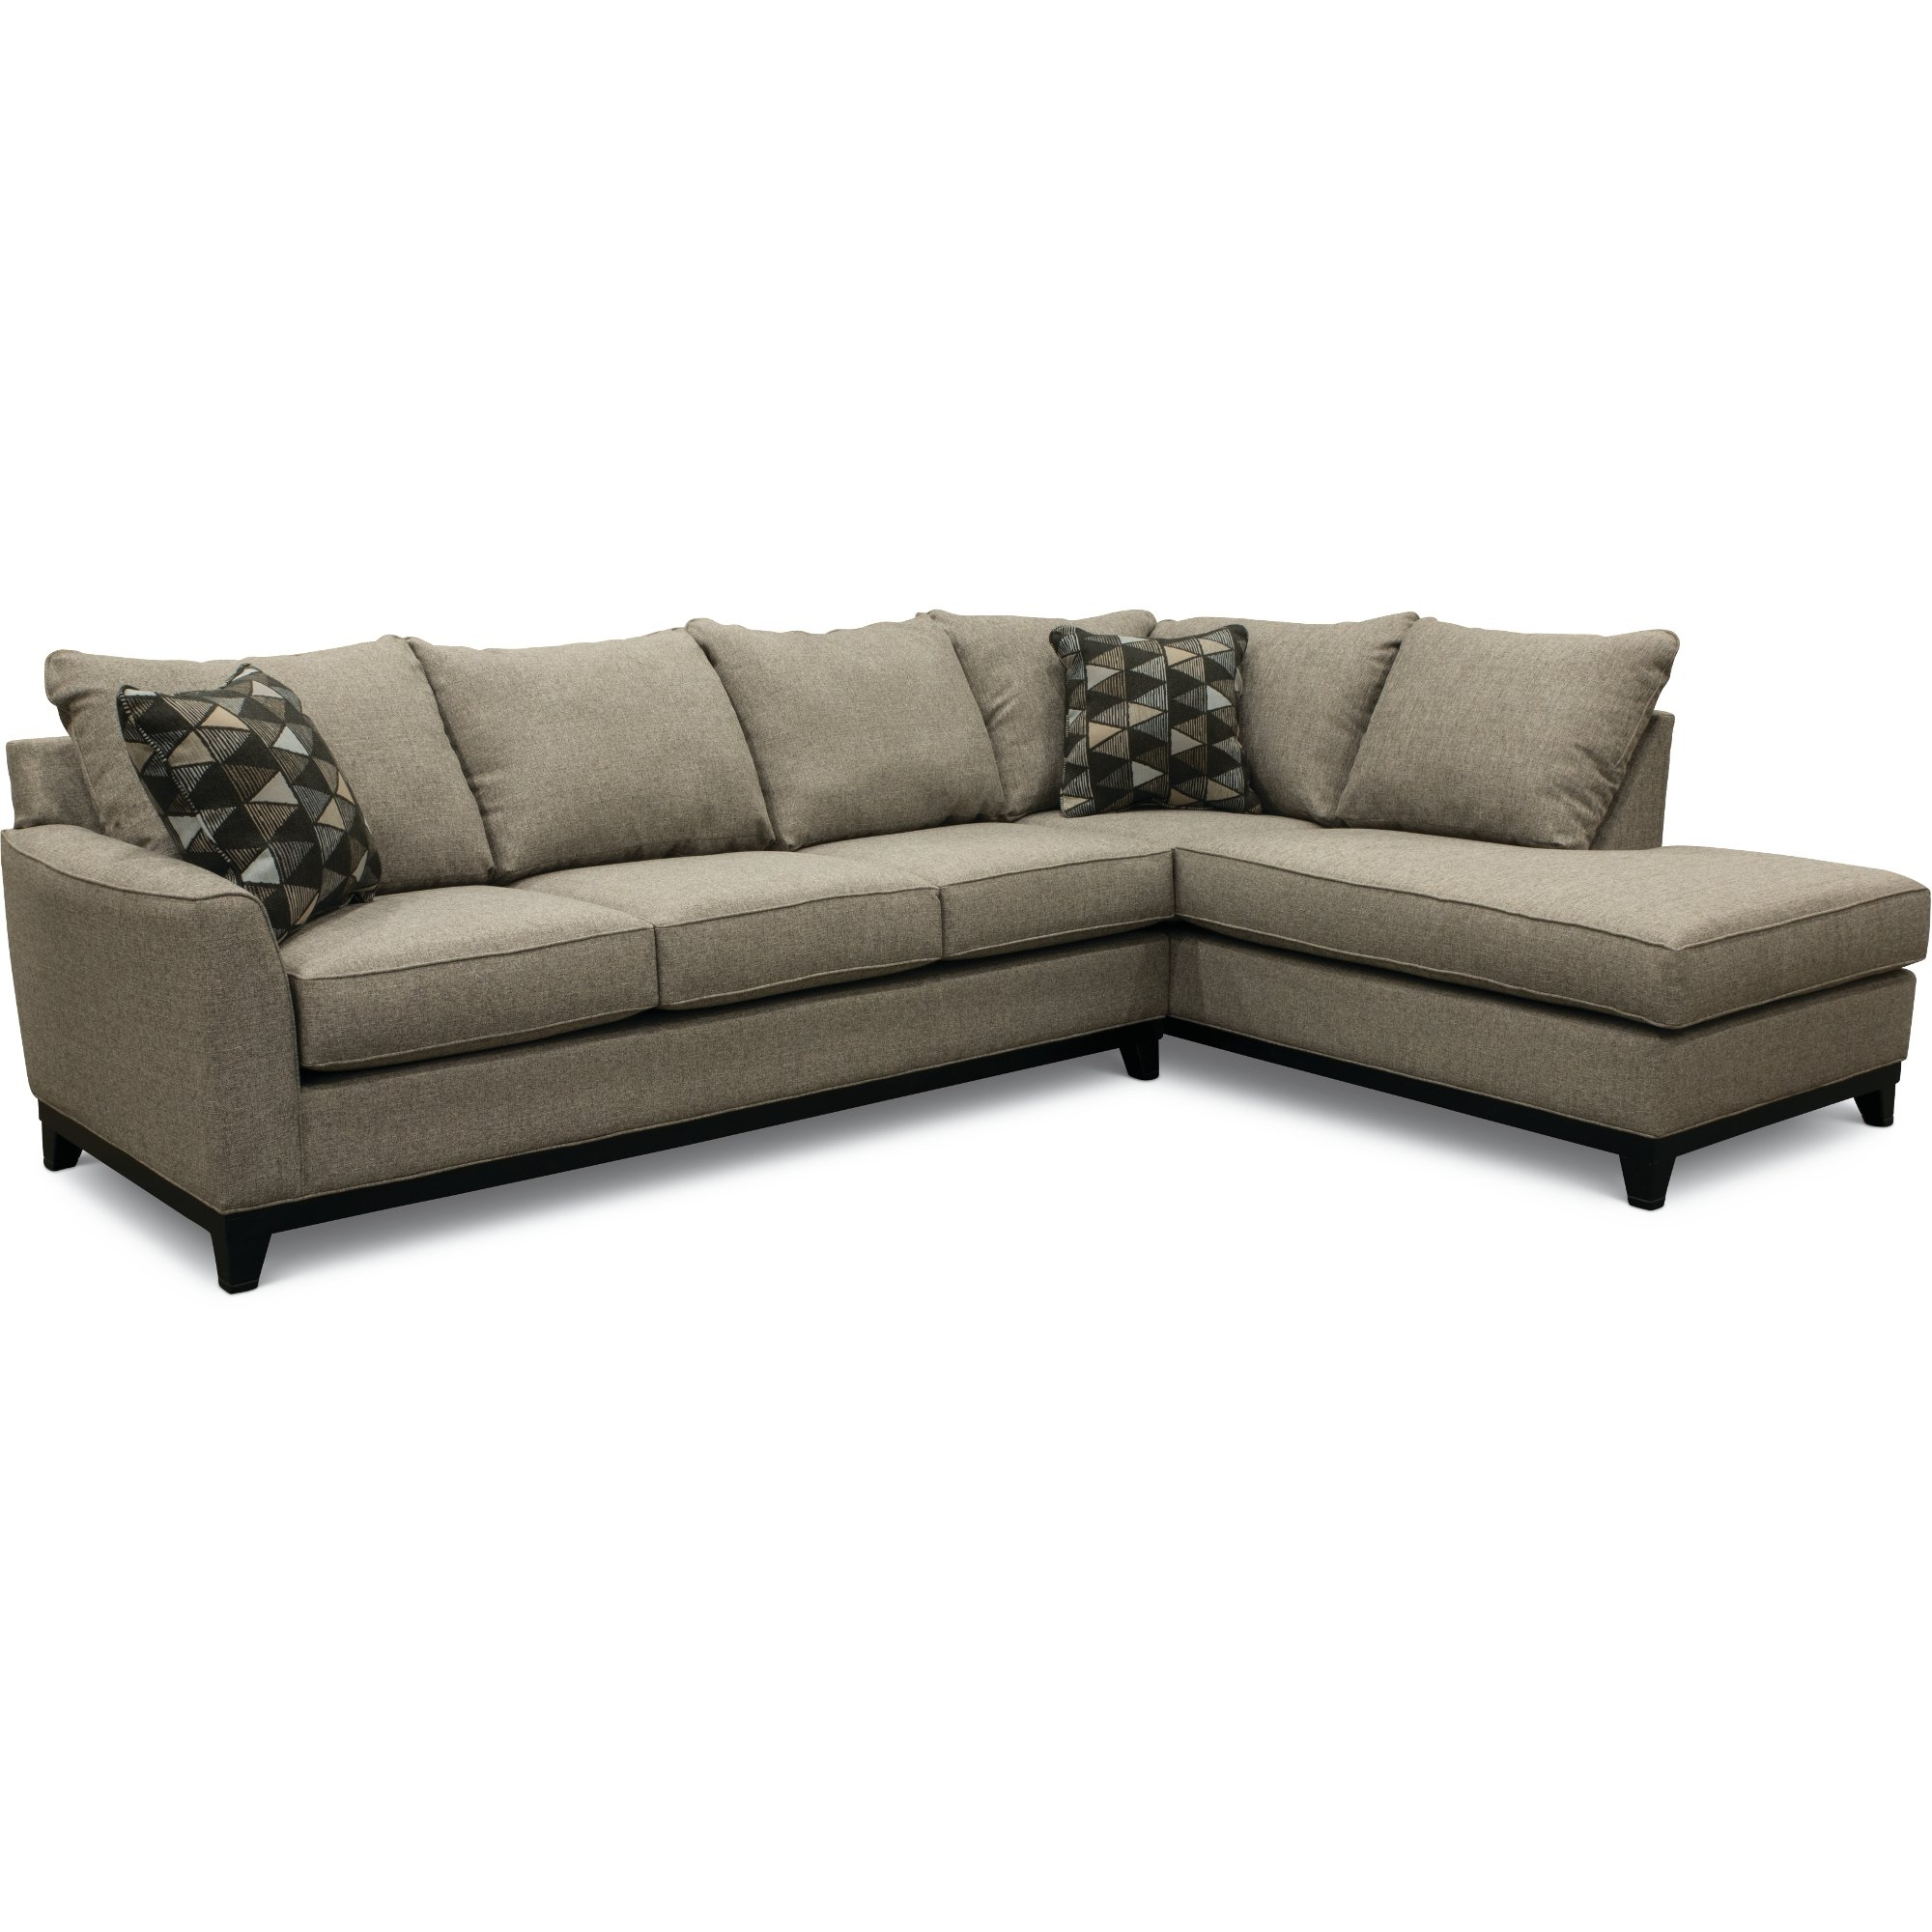 Casual Contemporary Slate Gray 2 Piece Sectional Sofa - Emerson | Rc intended for Jobs Oat 2 Piece Sectionals With Left Facing Chaise (Image 4 of 30)